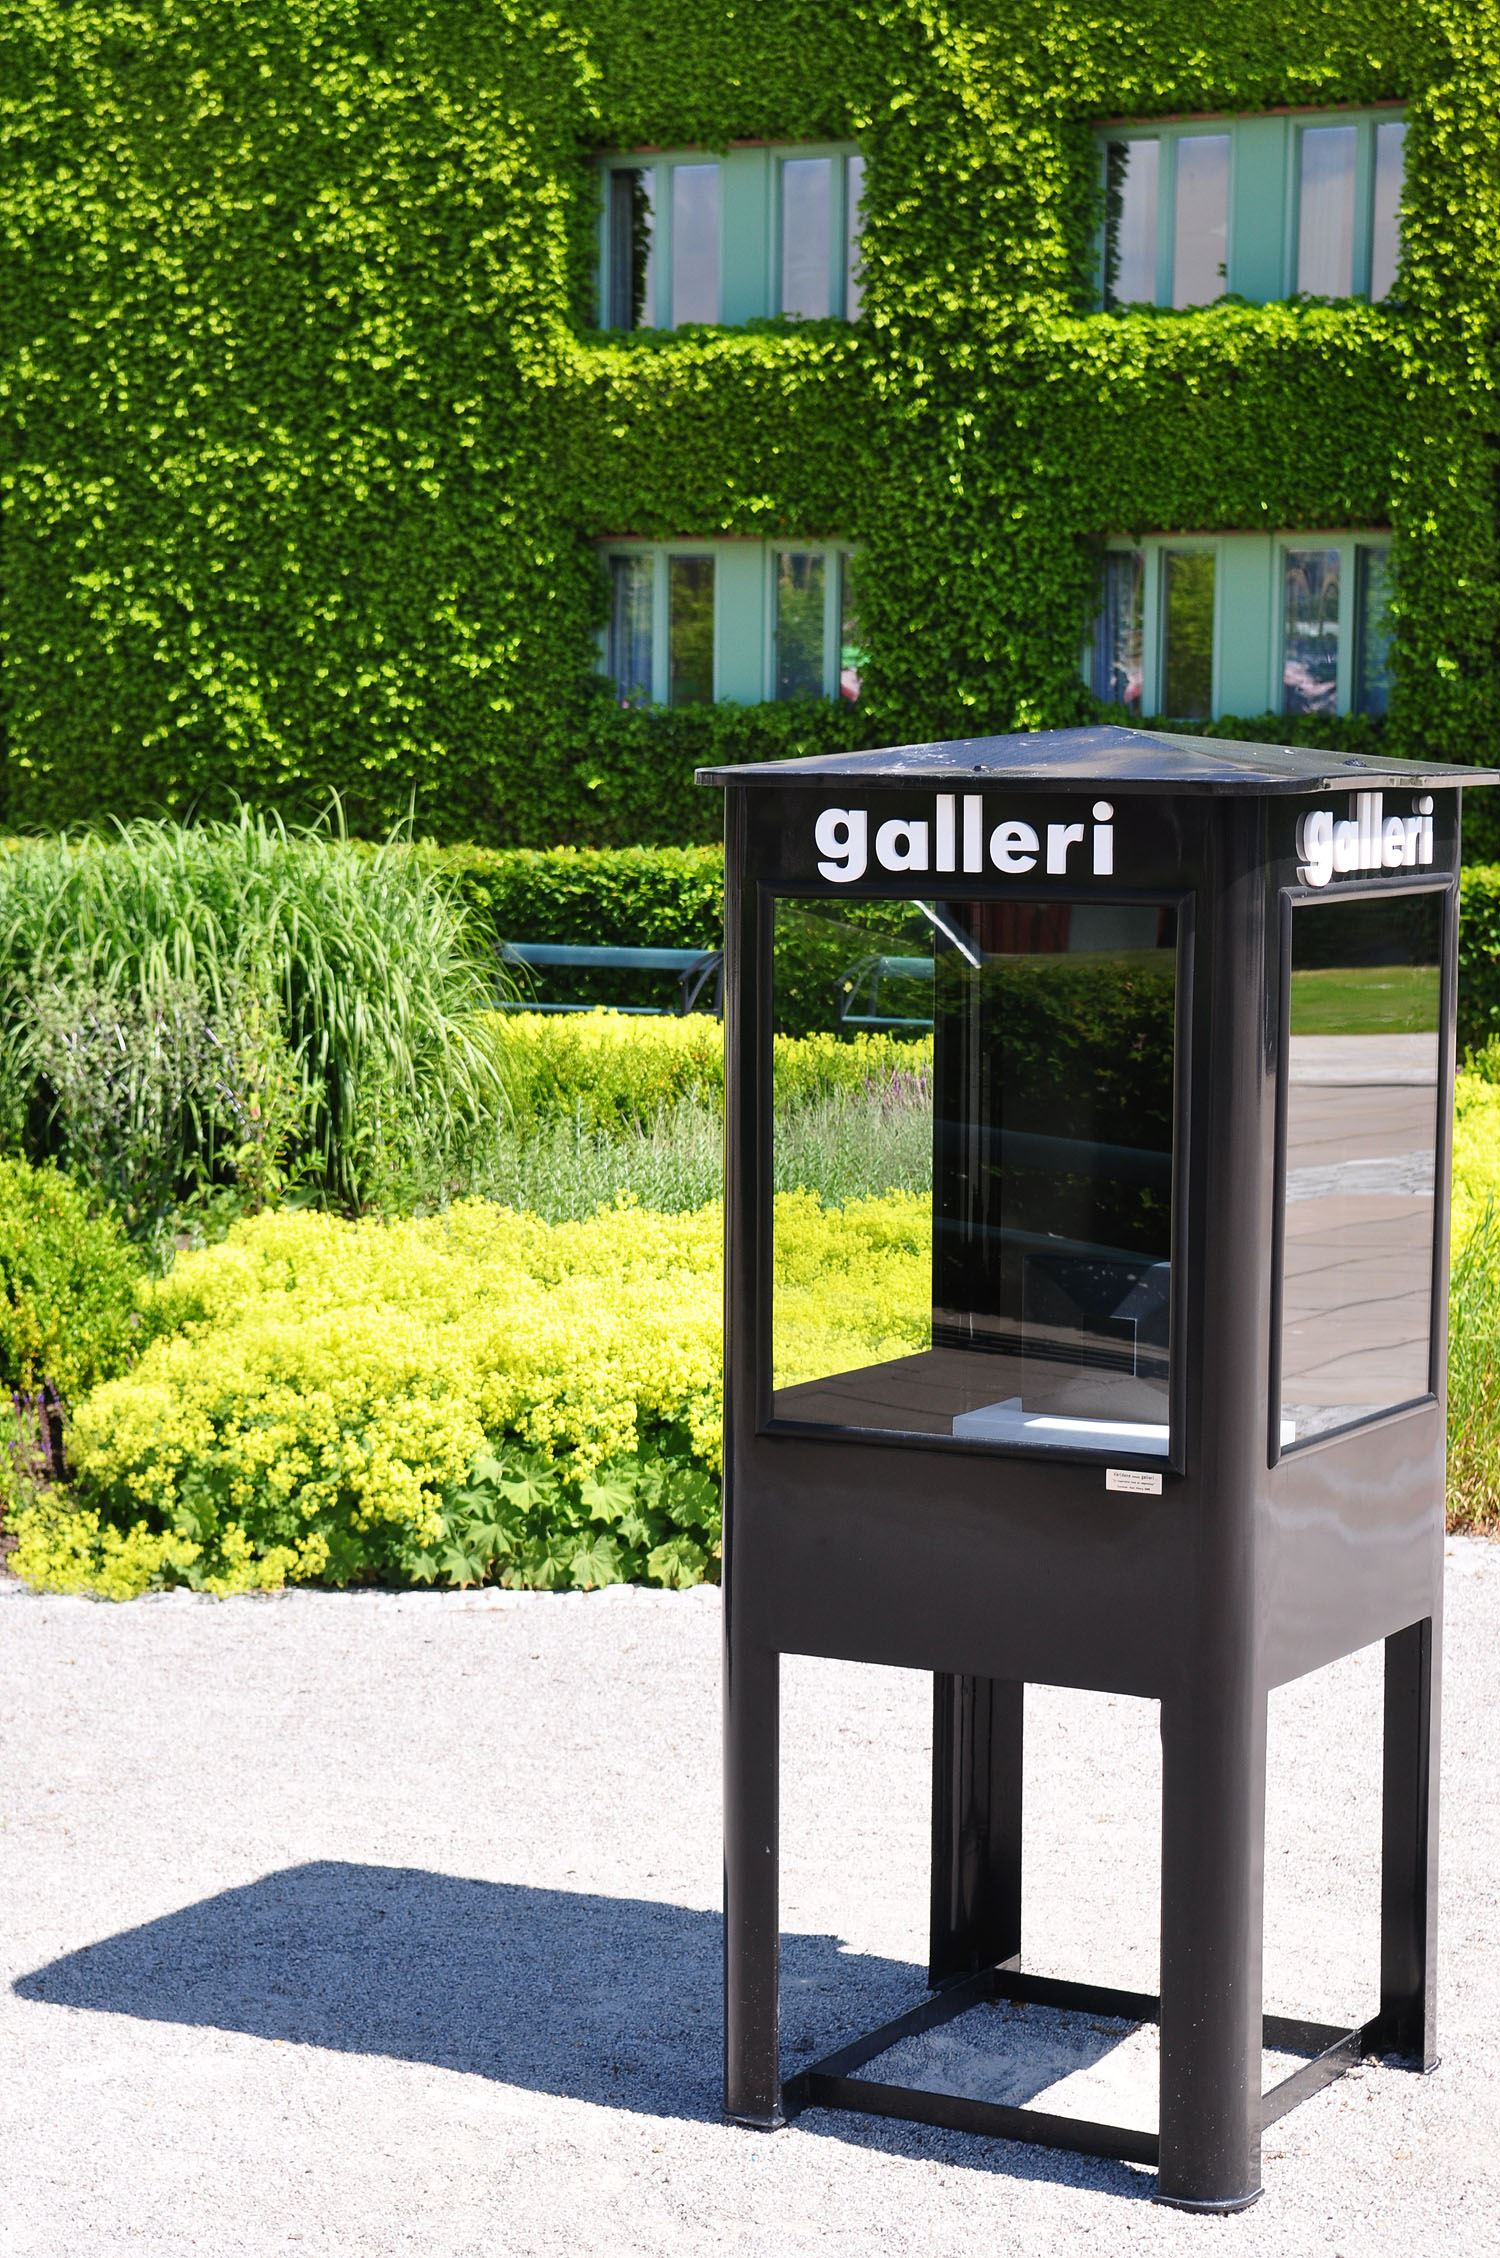 Tobias Delfin, The world's smallest art gallery